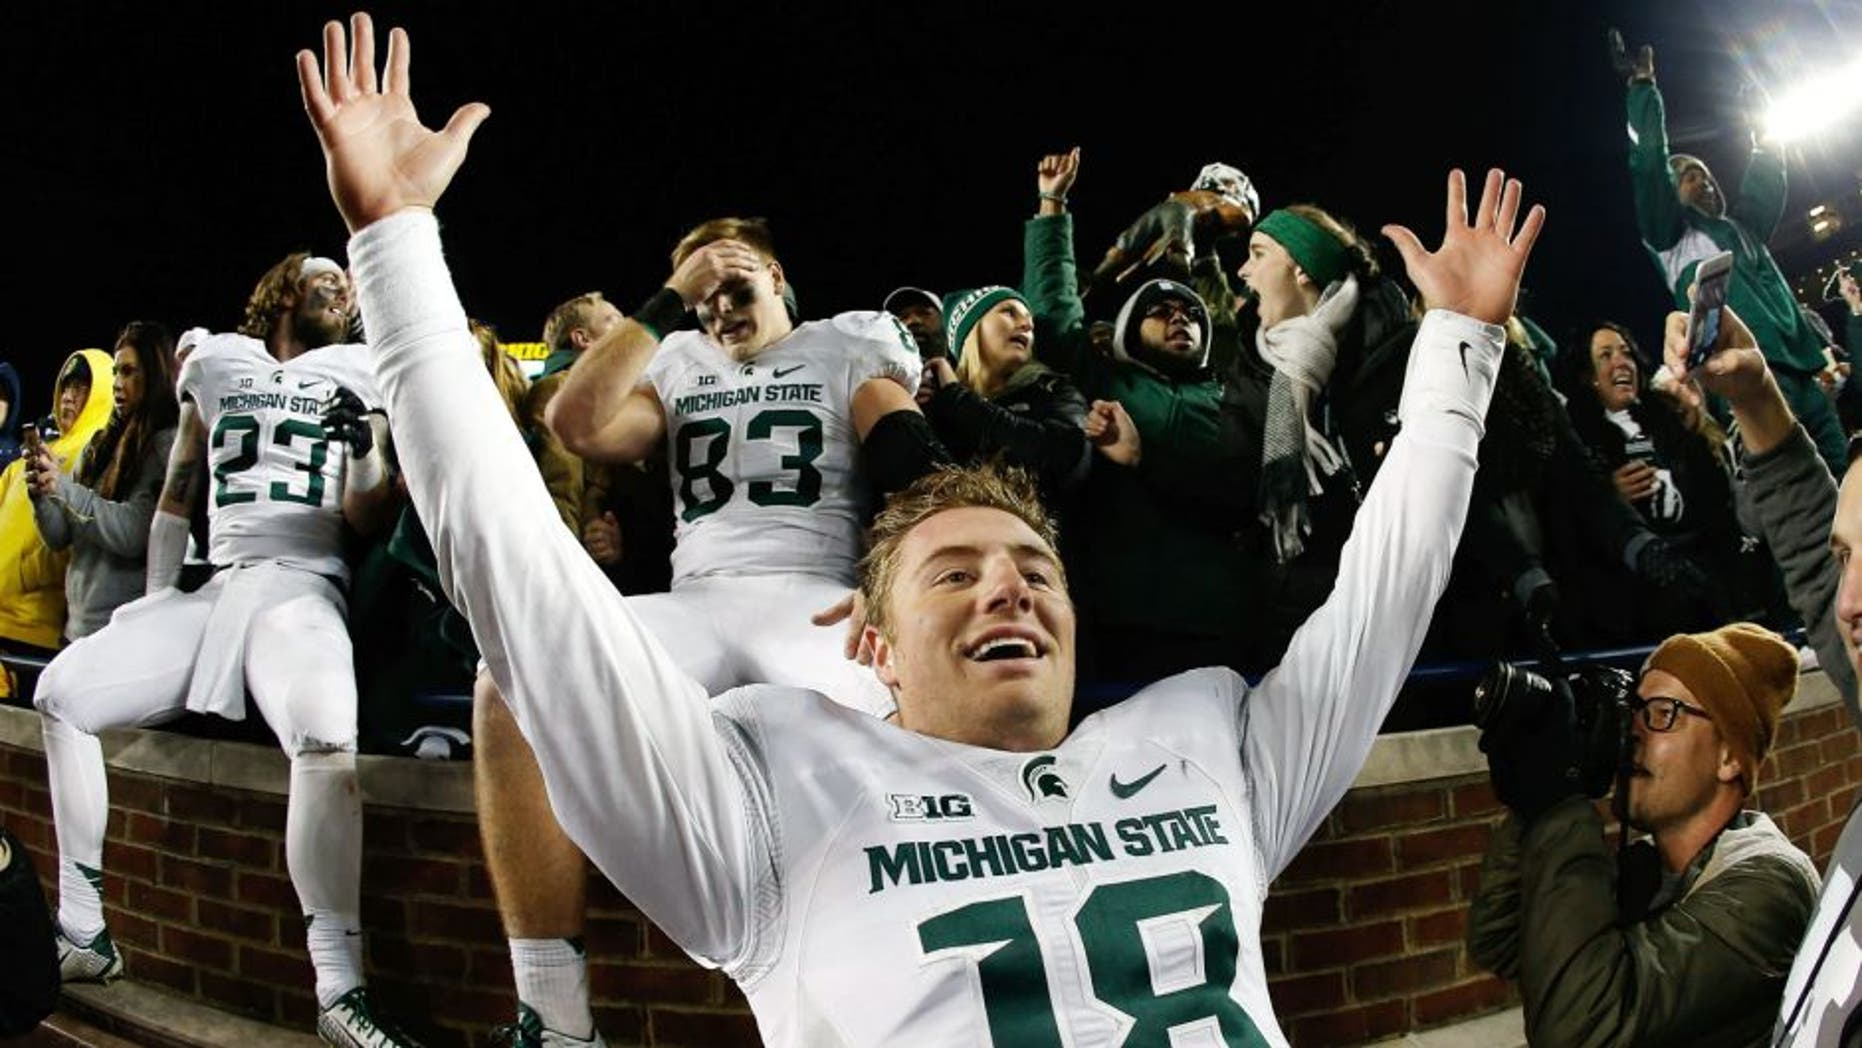 ANN ARBOR, MI - OCTOBER 17: Quarterback Connor Cook #18 of the Michigan State Spartans celebrates after defeating the Michigan Wolverines 27-23 in the college football game at Michigan Stadium on October 17, 2015 in Ann Arbor, Michigan. (Photo by Christian Petersen/Getty Images)